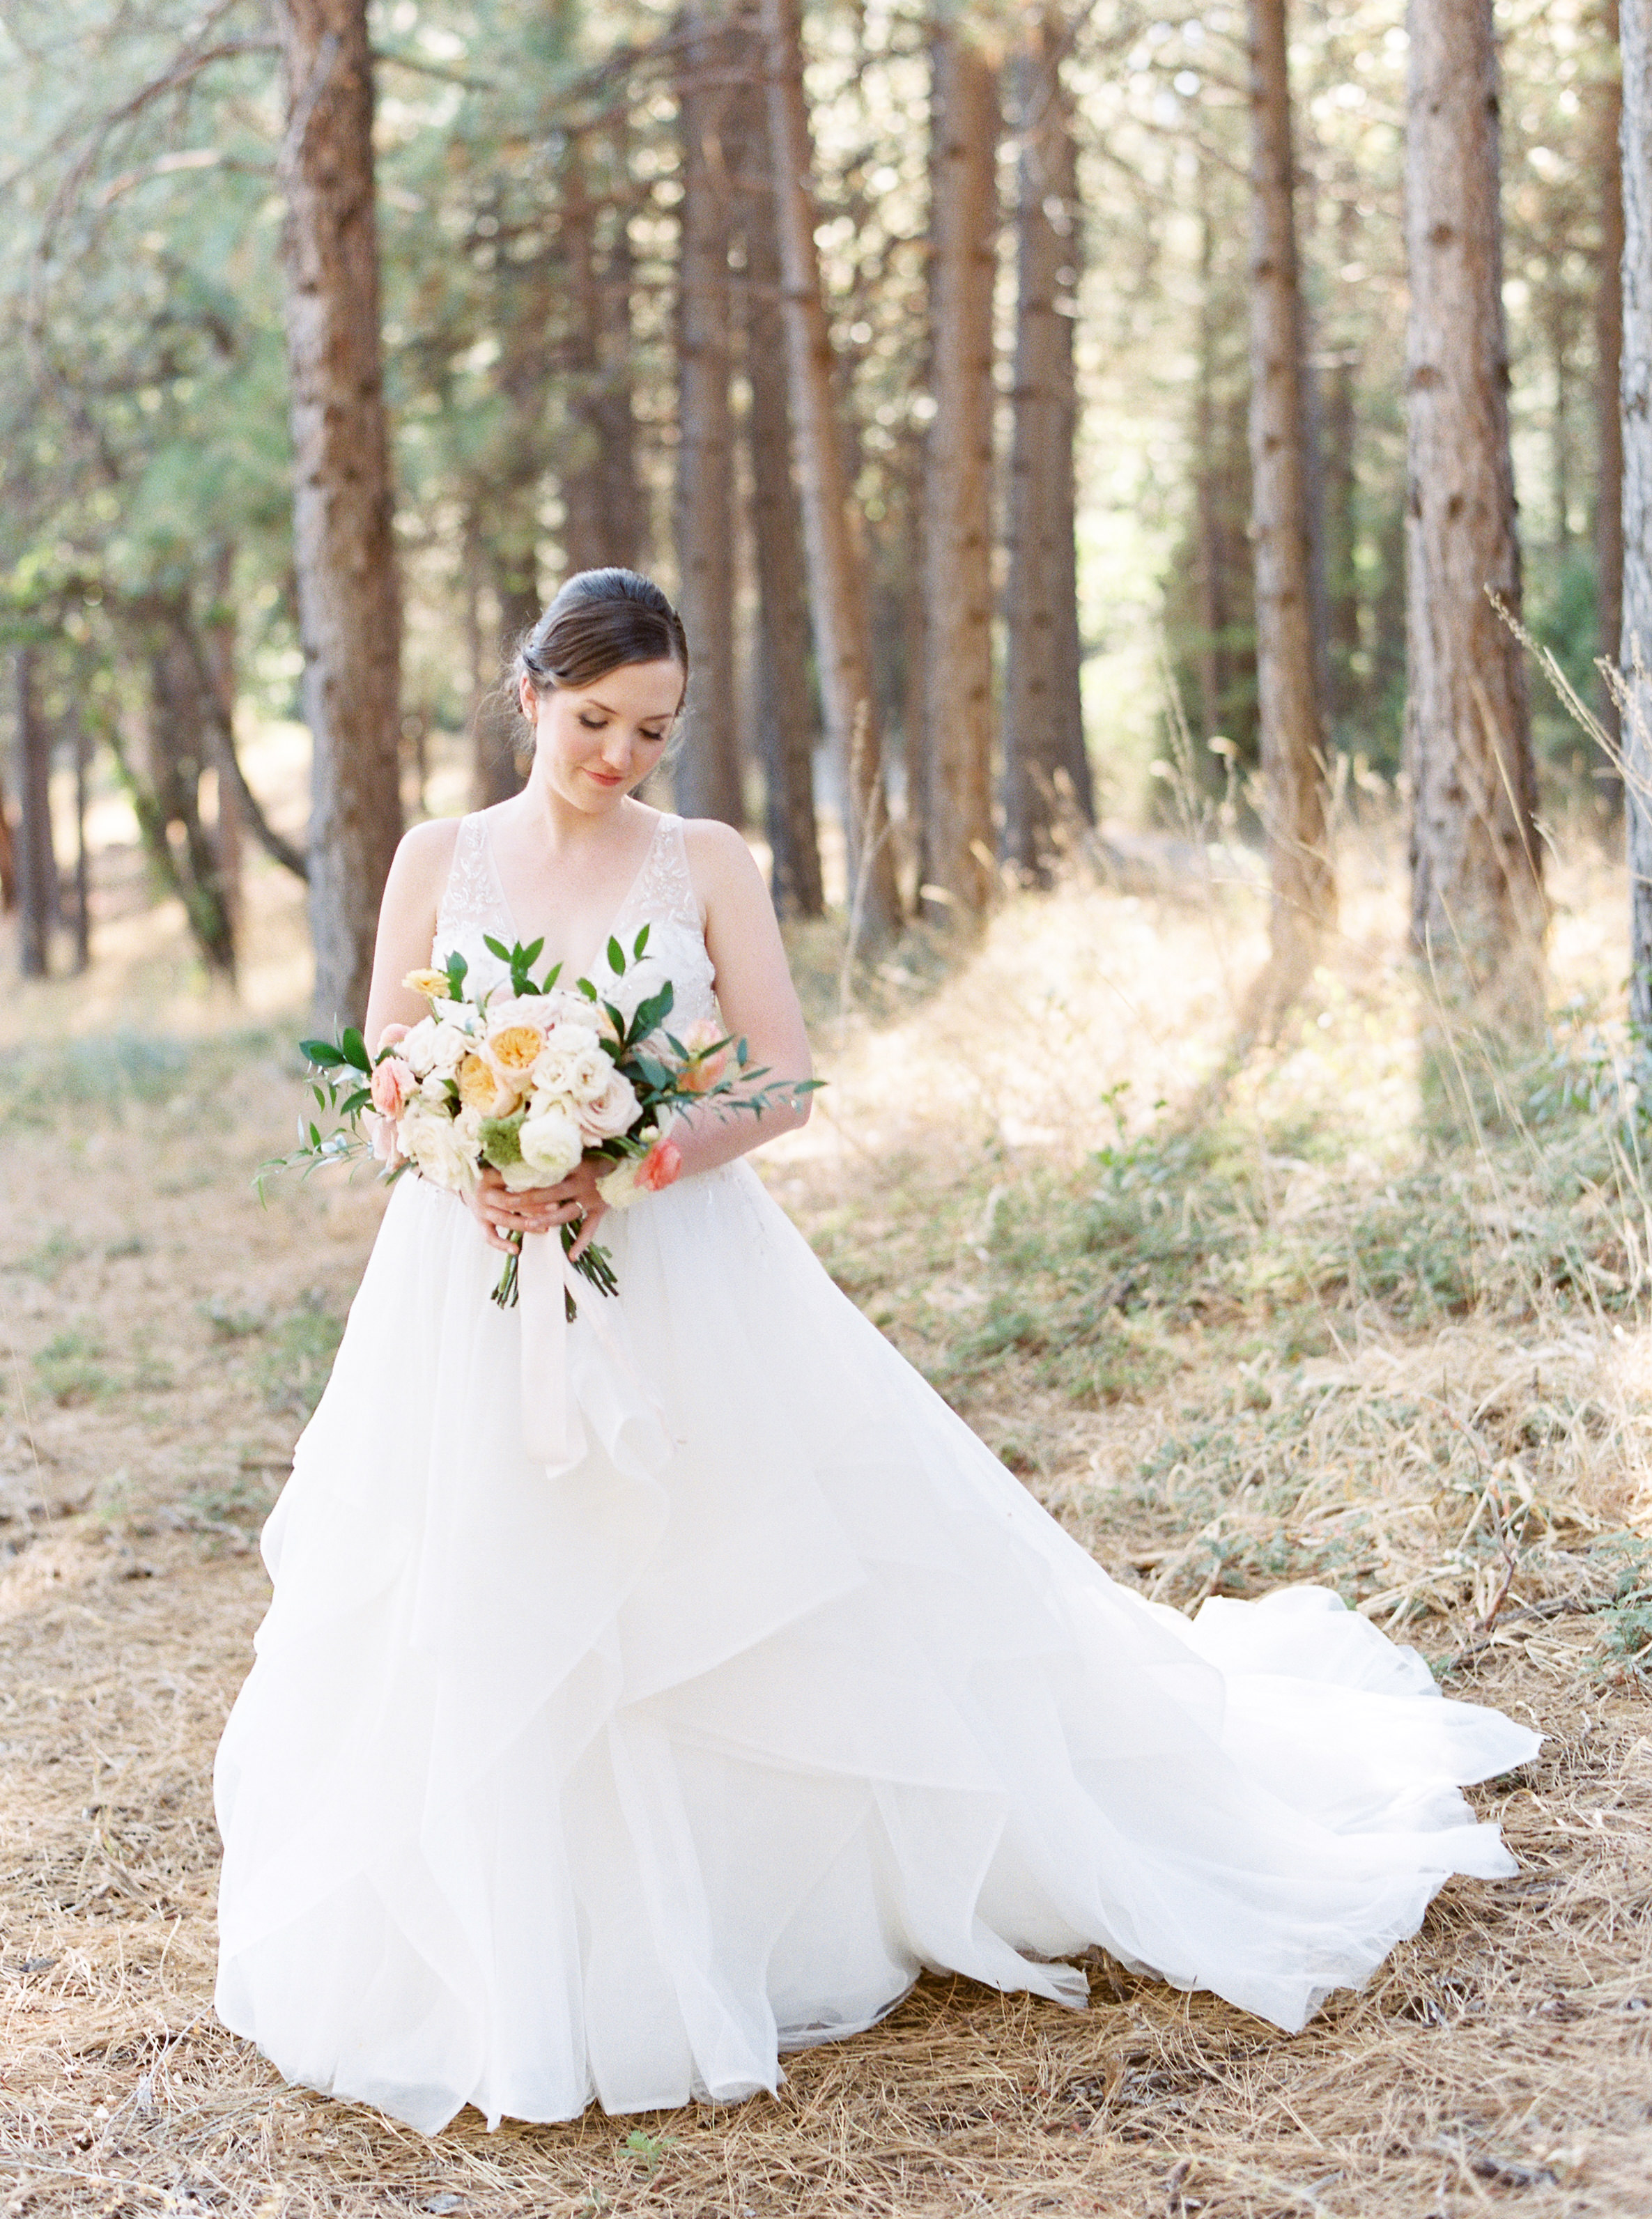 Forest-house-lodge-wedding-foresthill-california-6.jpg